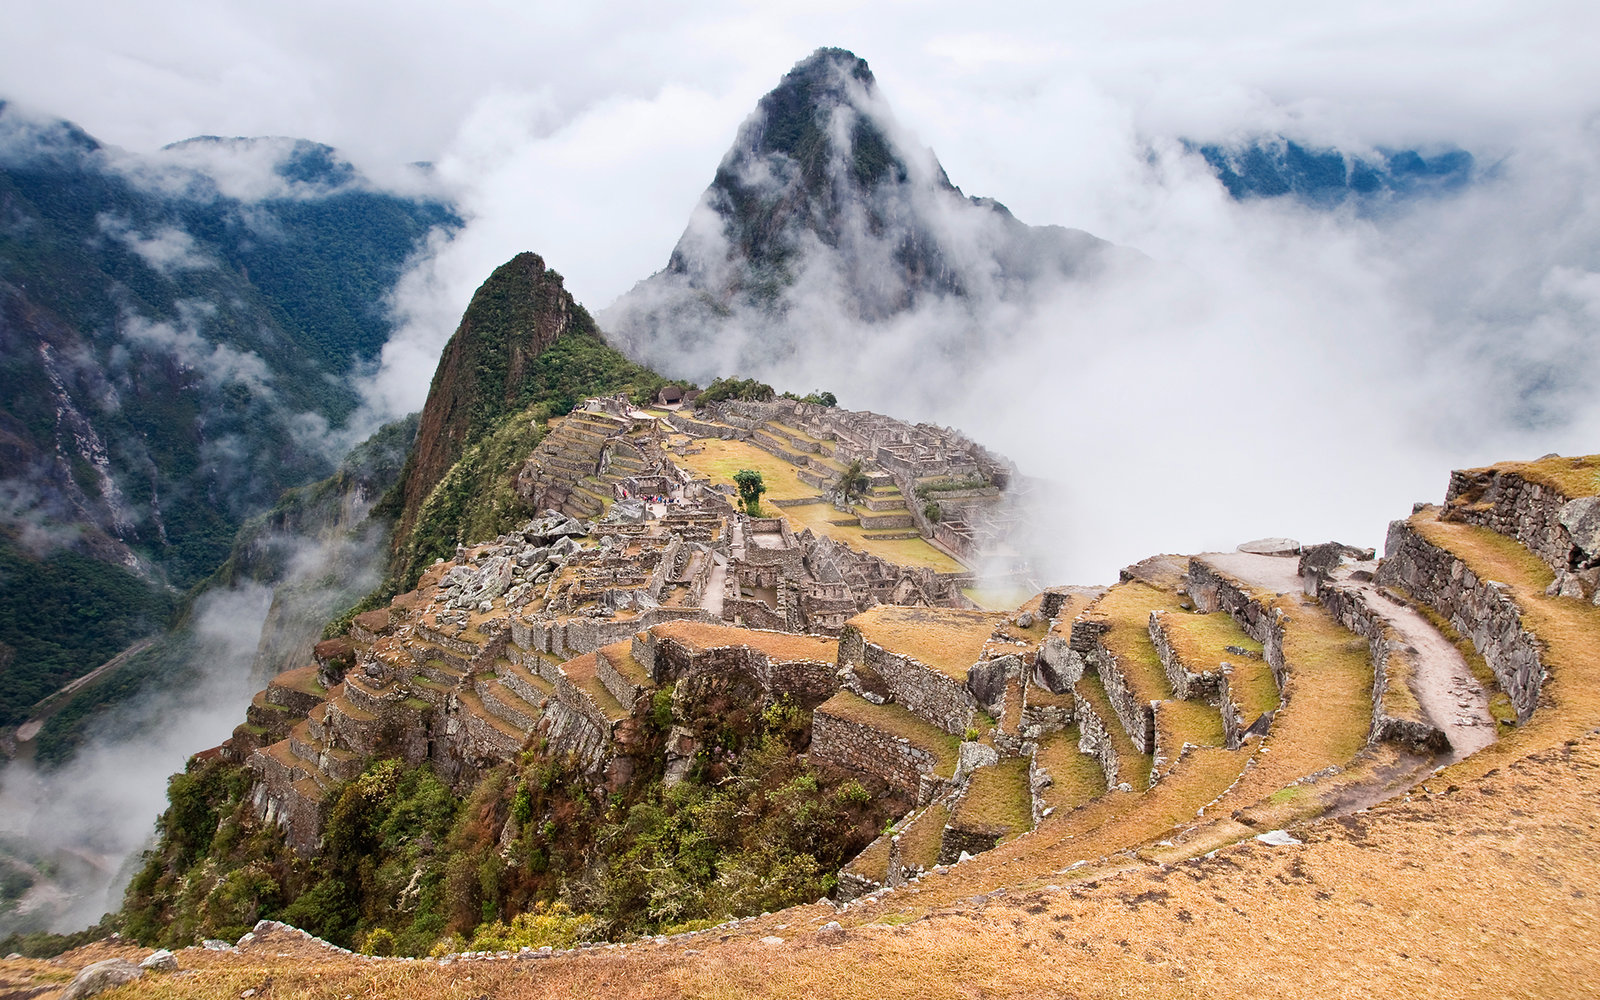 [UNVERIFIED CONTENT] Cloudy and rainy day at Machu Picchu, Peru